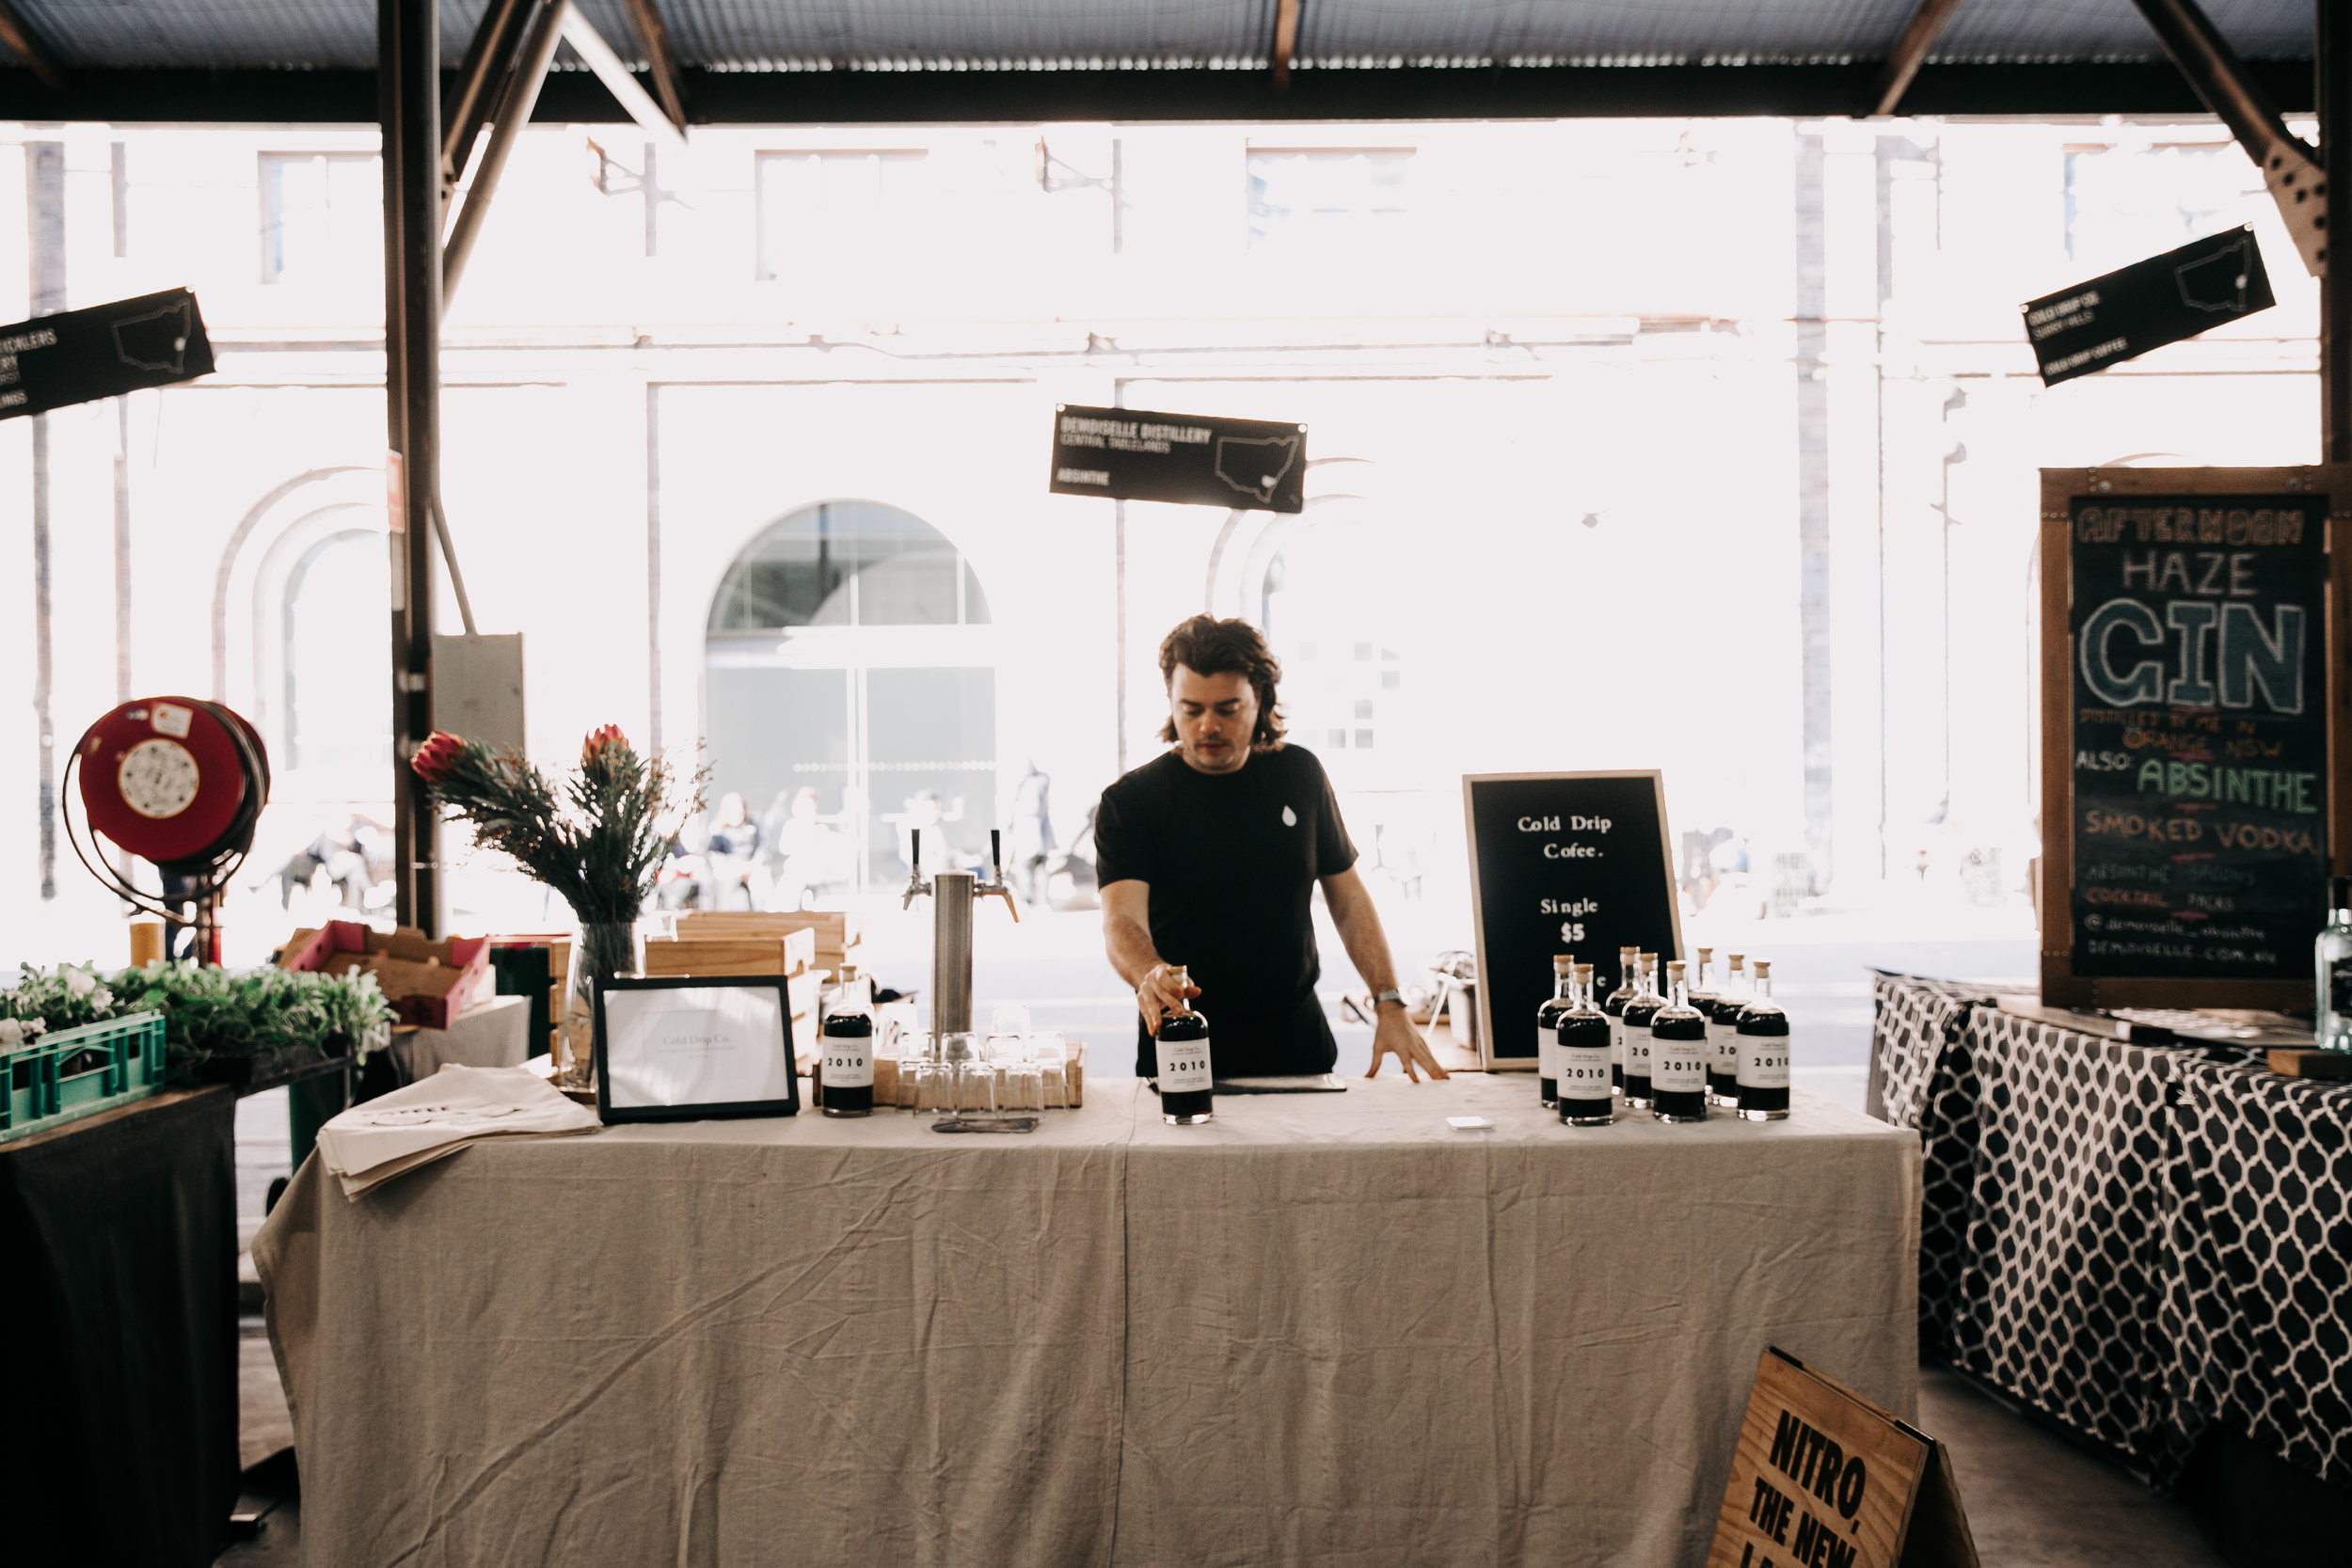 Carriageworks and cold drip co